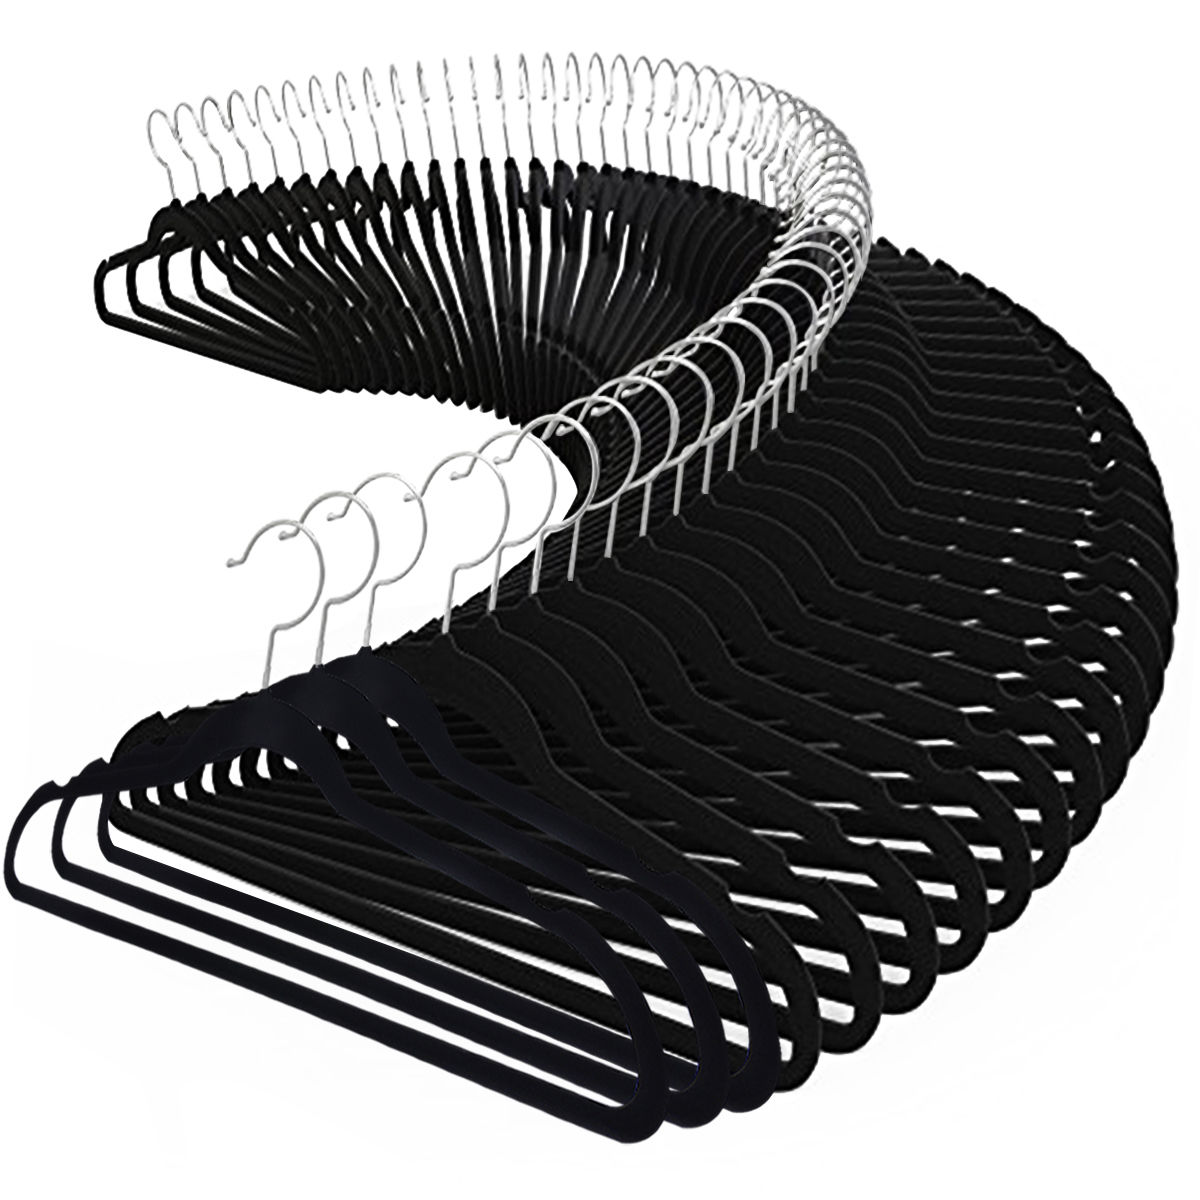 Costway 100PCS Velvet Clothes Suit/ Shirt/ Pants Hangers Hook Non Slip Storage Organize